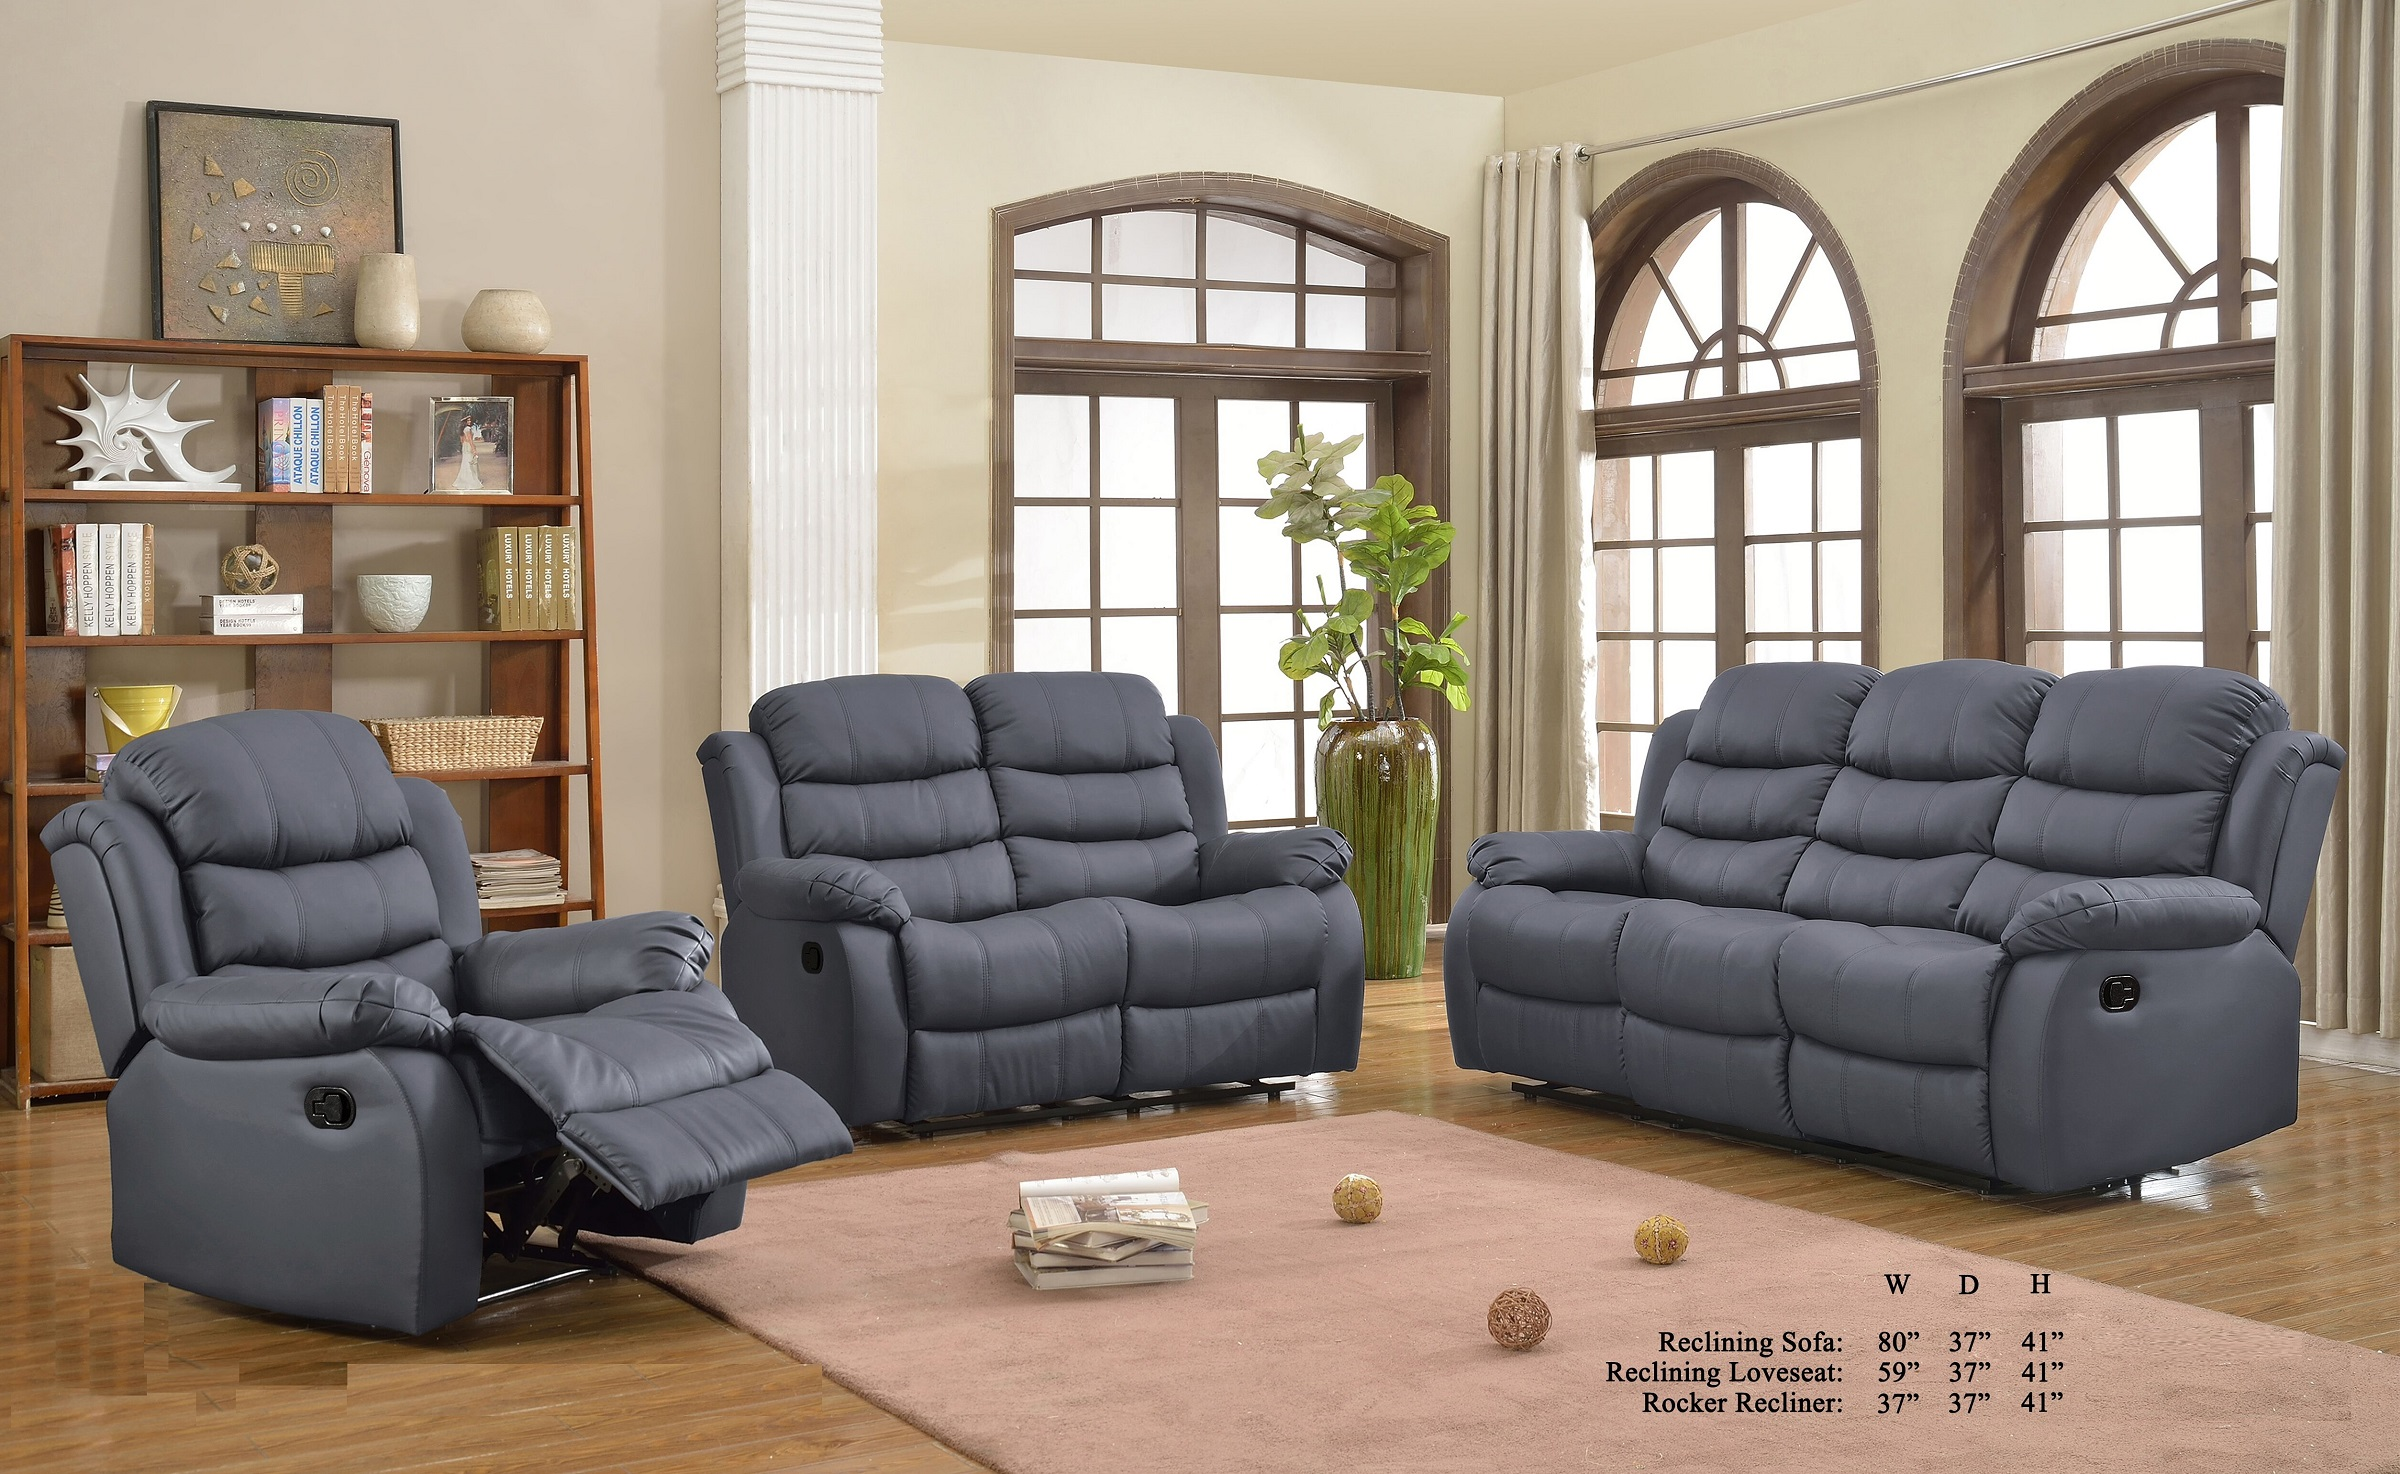 Gray Color Plush Comfort Bonded Leather 3pc Sofa Set Cushion Sofa Loveseat  And Chair Living Room Furniture